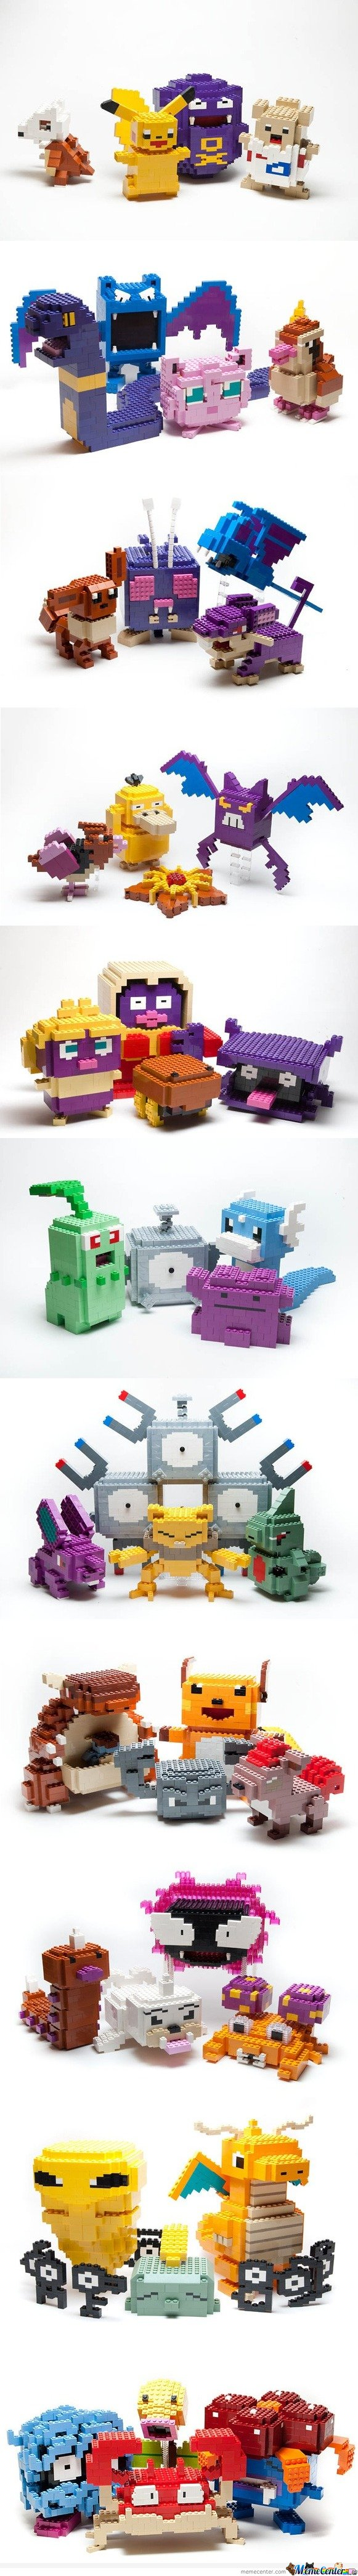 Awesome lego sculptures - Pokemon